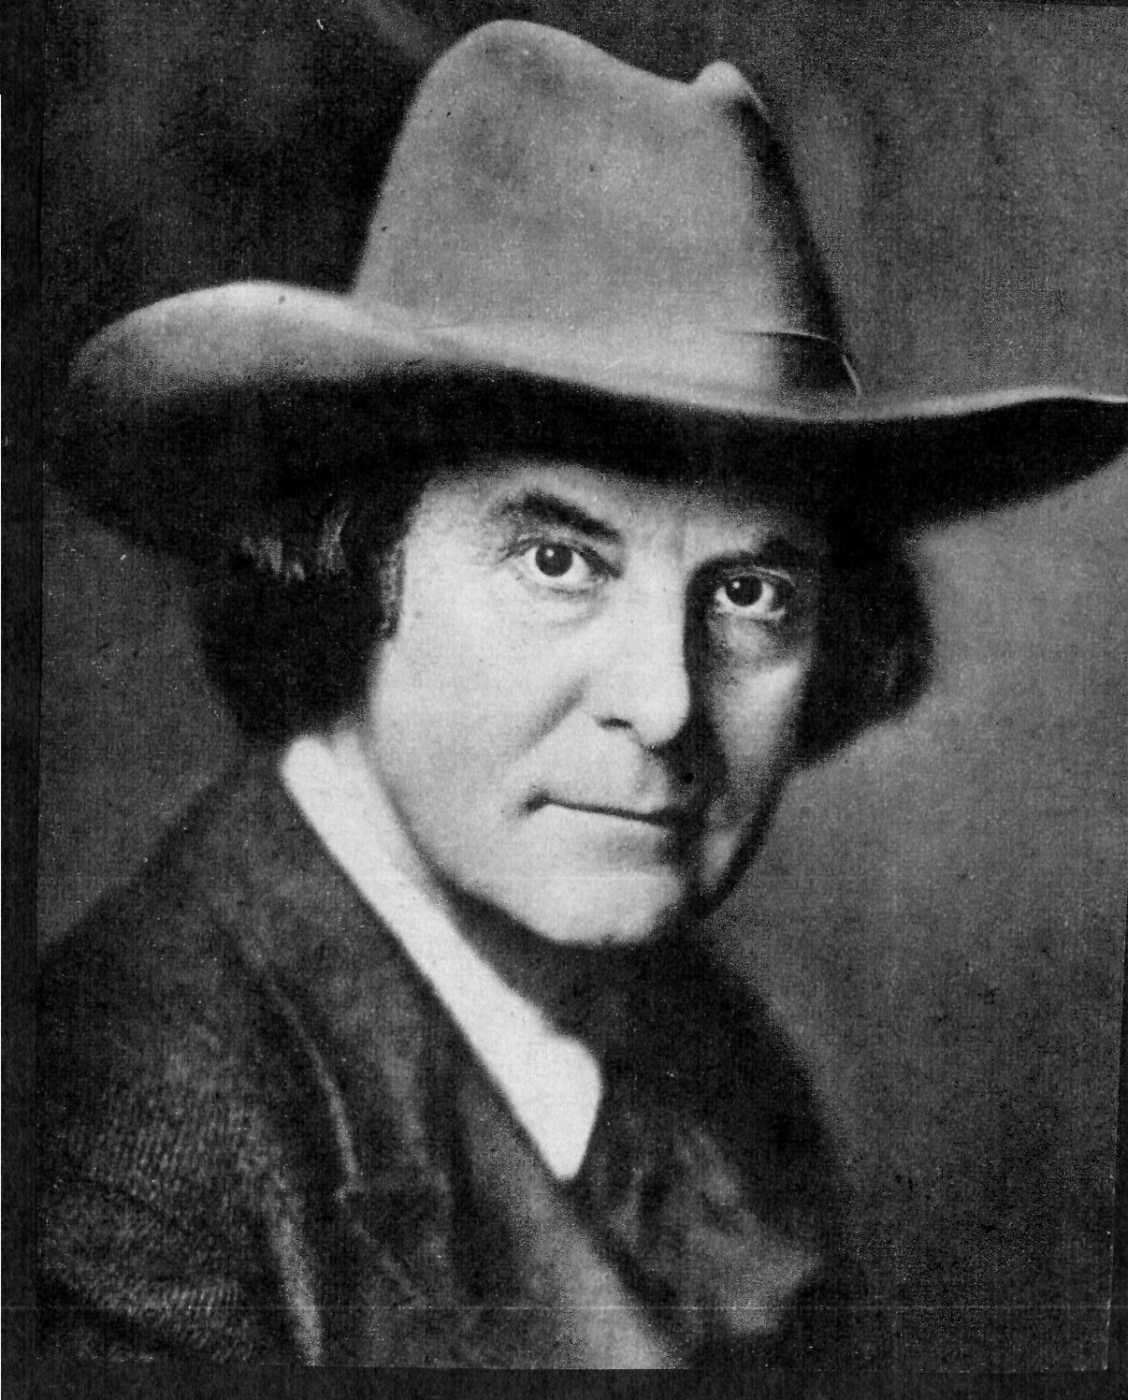 Elbert Green Hubbard